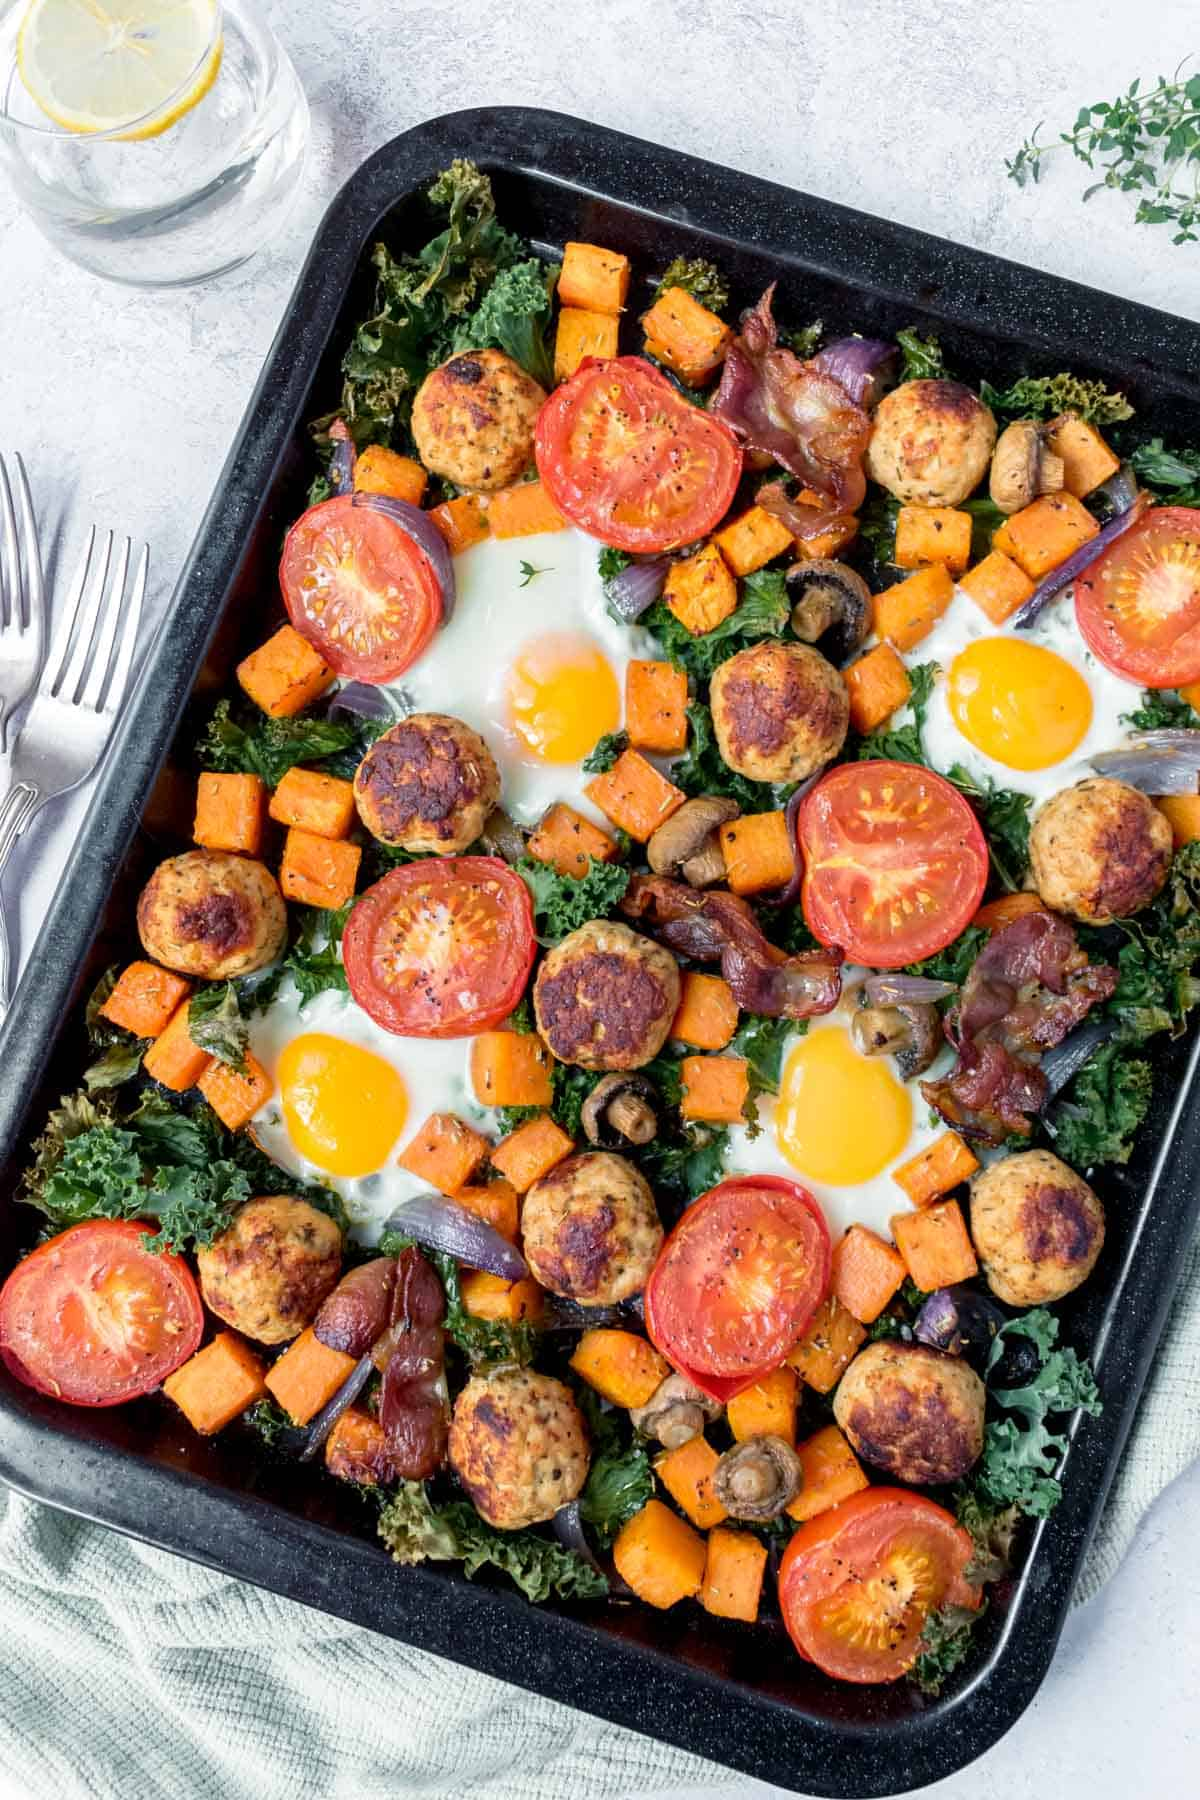 Healthy Full English Breakfast on a baking tray settled on a green tea towel with a glass of water and two forks